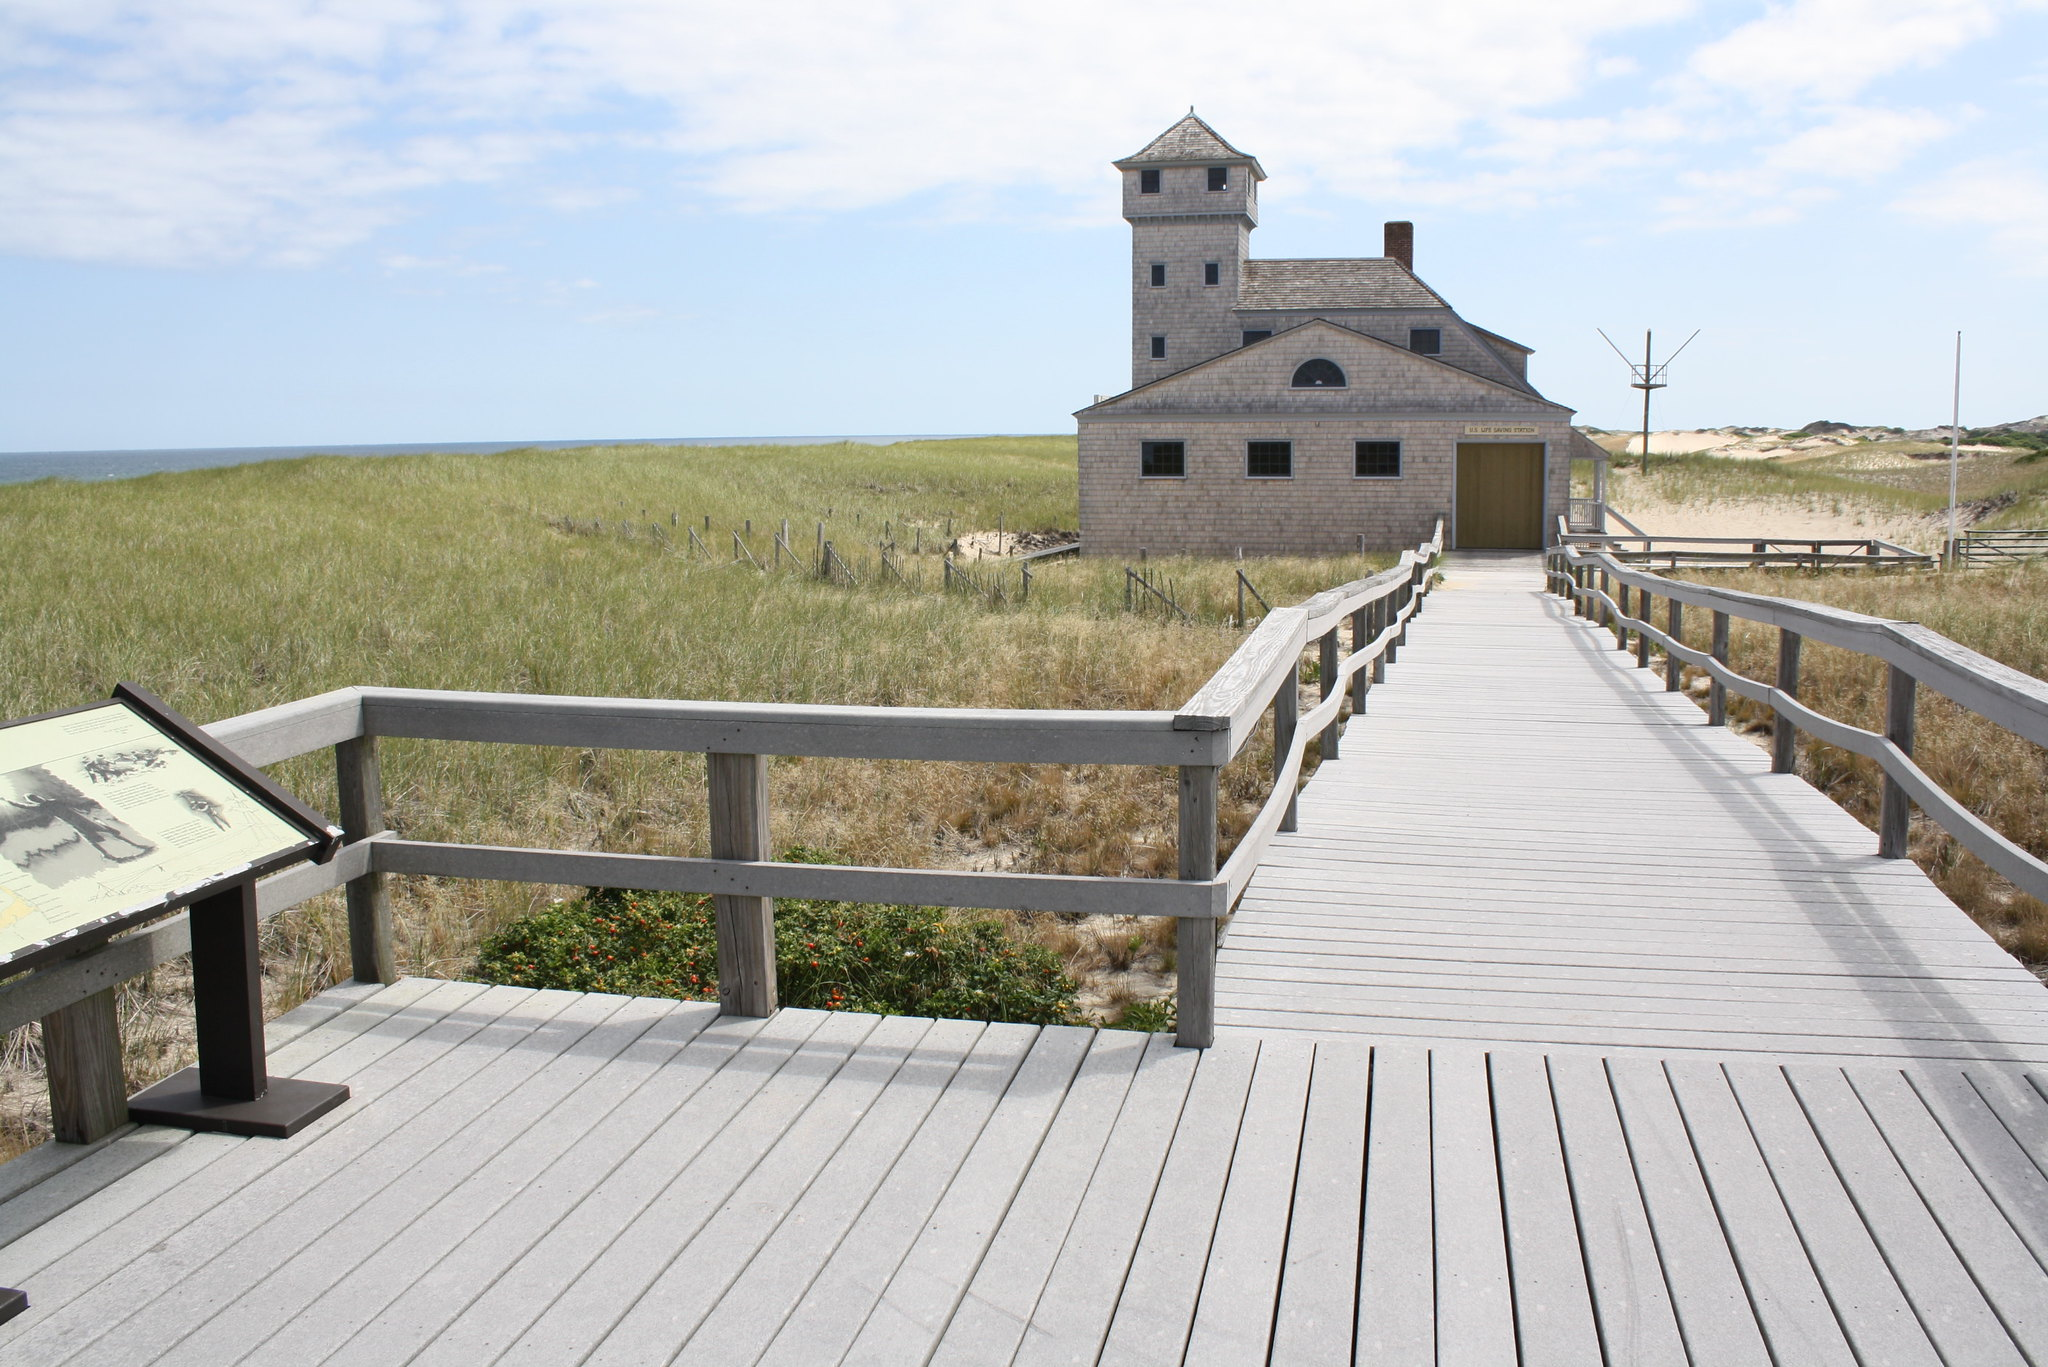 15 things to do in Provincetown, Massachusetts